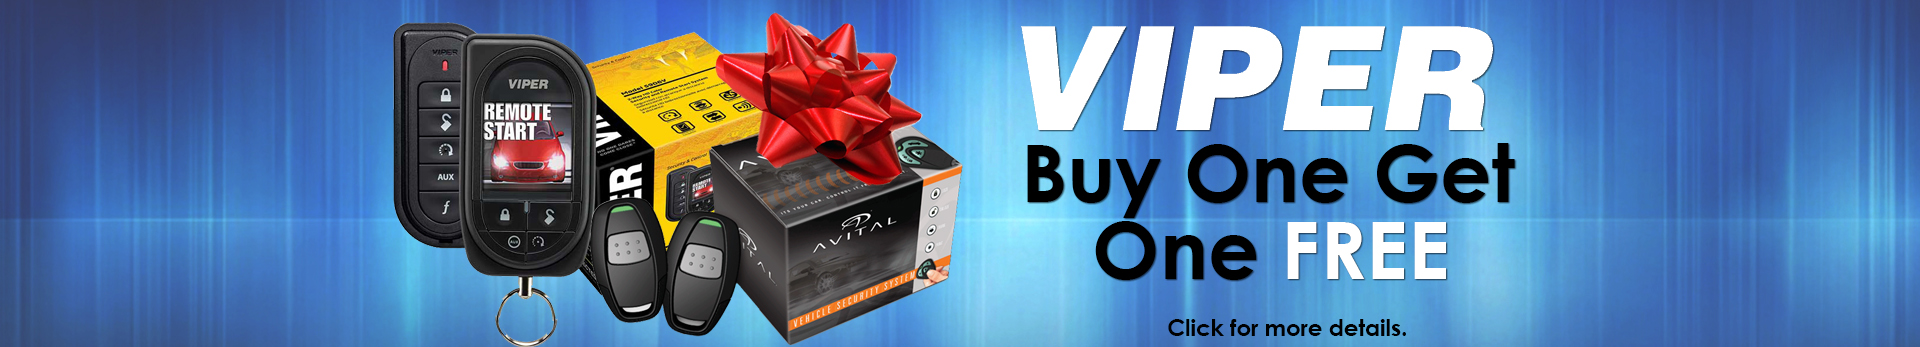 Viper Buy One Get One FREE!